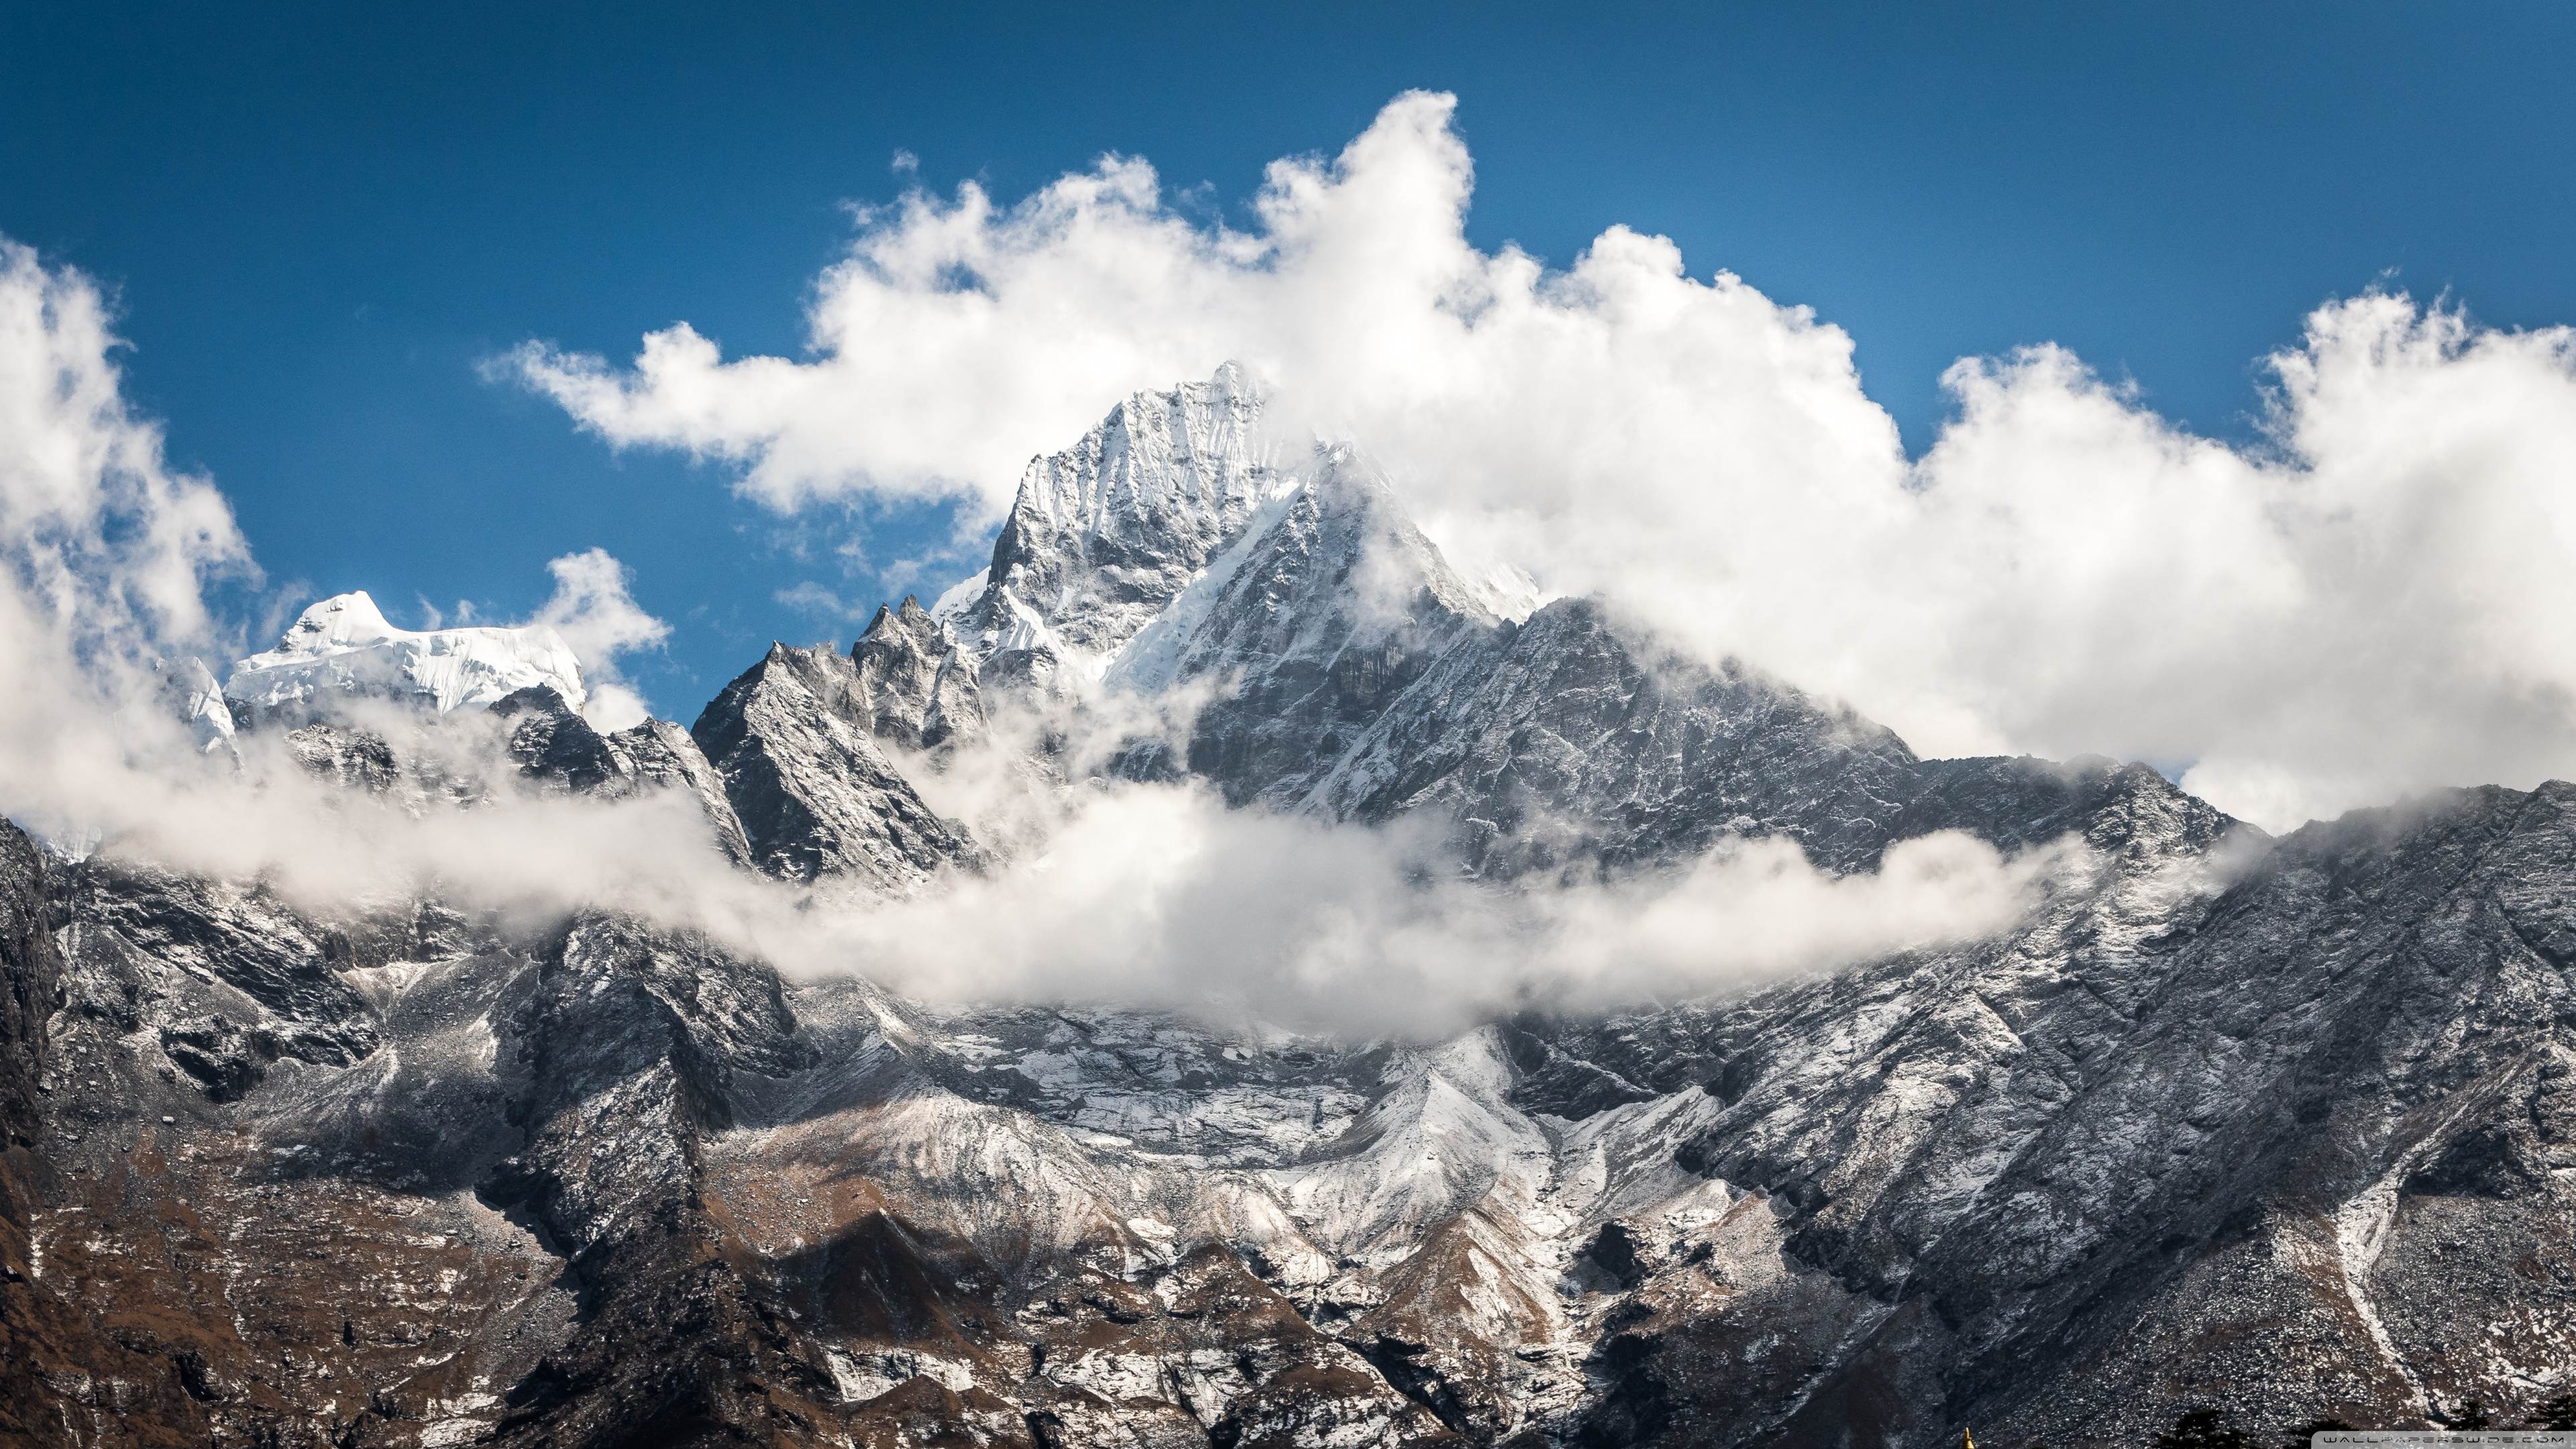 Everest 4k Wallpapers For Your Desktop Or Mobile Screen Free And Easy To Download